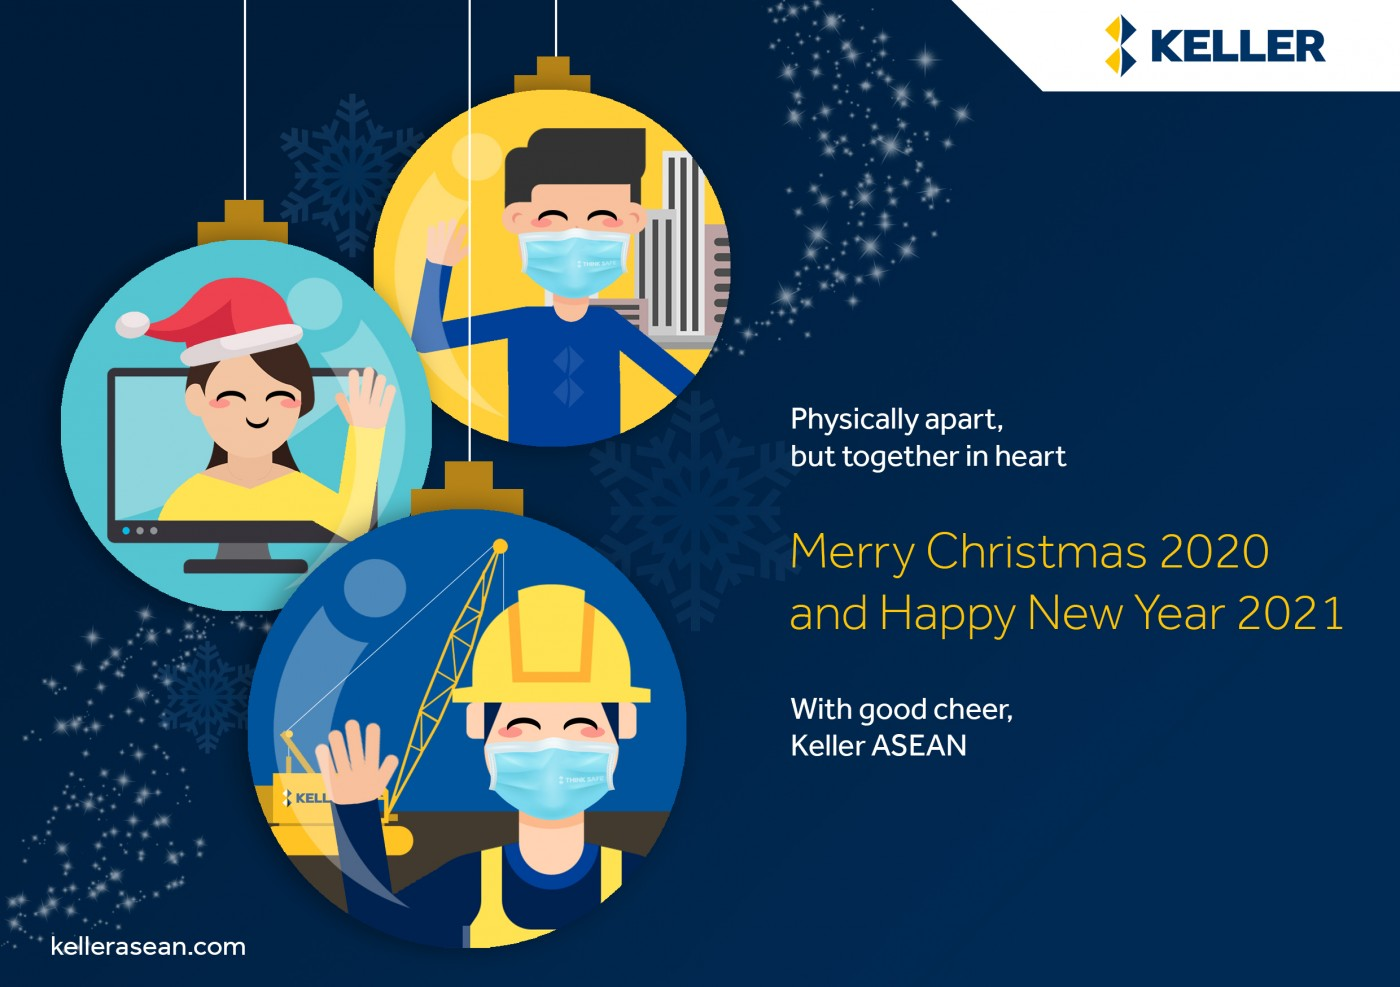 Keller ASEAN Holiday Greetings Christmas 2020 New Year 2021